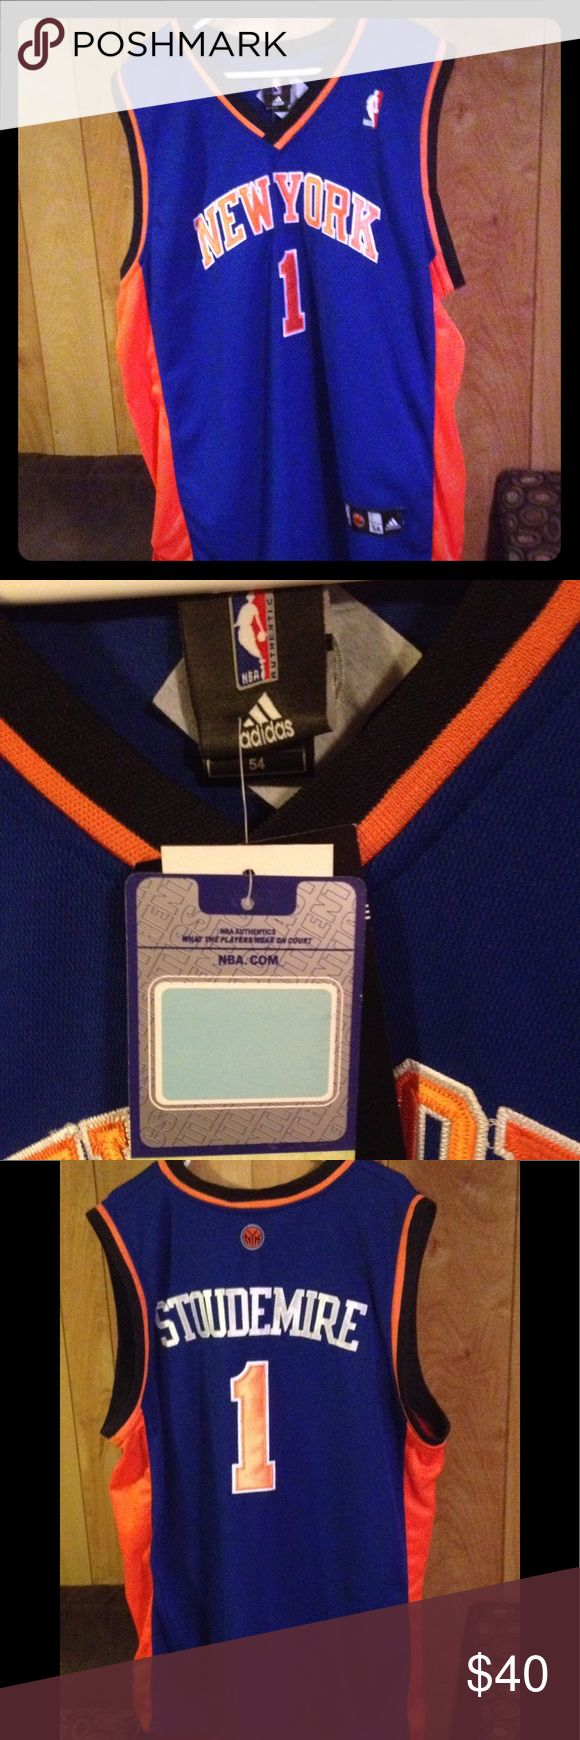 NY Knicks Jersey PLEASE MAKE SURE ITEM IS STILL AVAILABLE BEFORE PURCHASING   NWT,Sz 54,Stoudemire #1 jersey blue orange white black. FAST SHIPPING SAME OR NEXT DAY MON-SAT,OFFERS ARE WELCOME,BUNDLE AND SAVE.  10% off 2 adidas Shirts